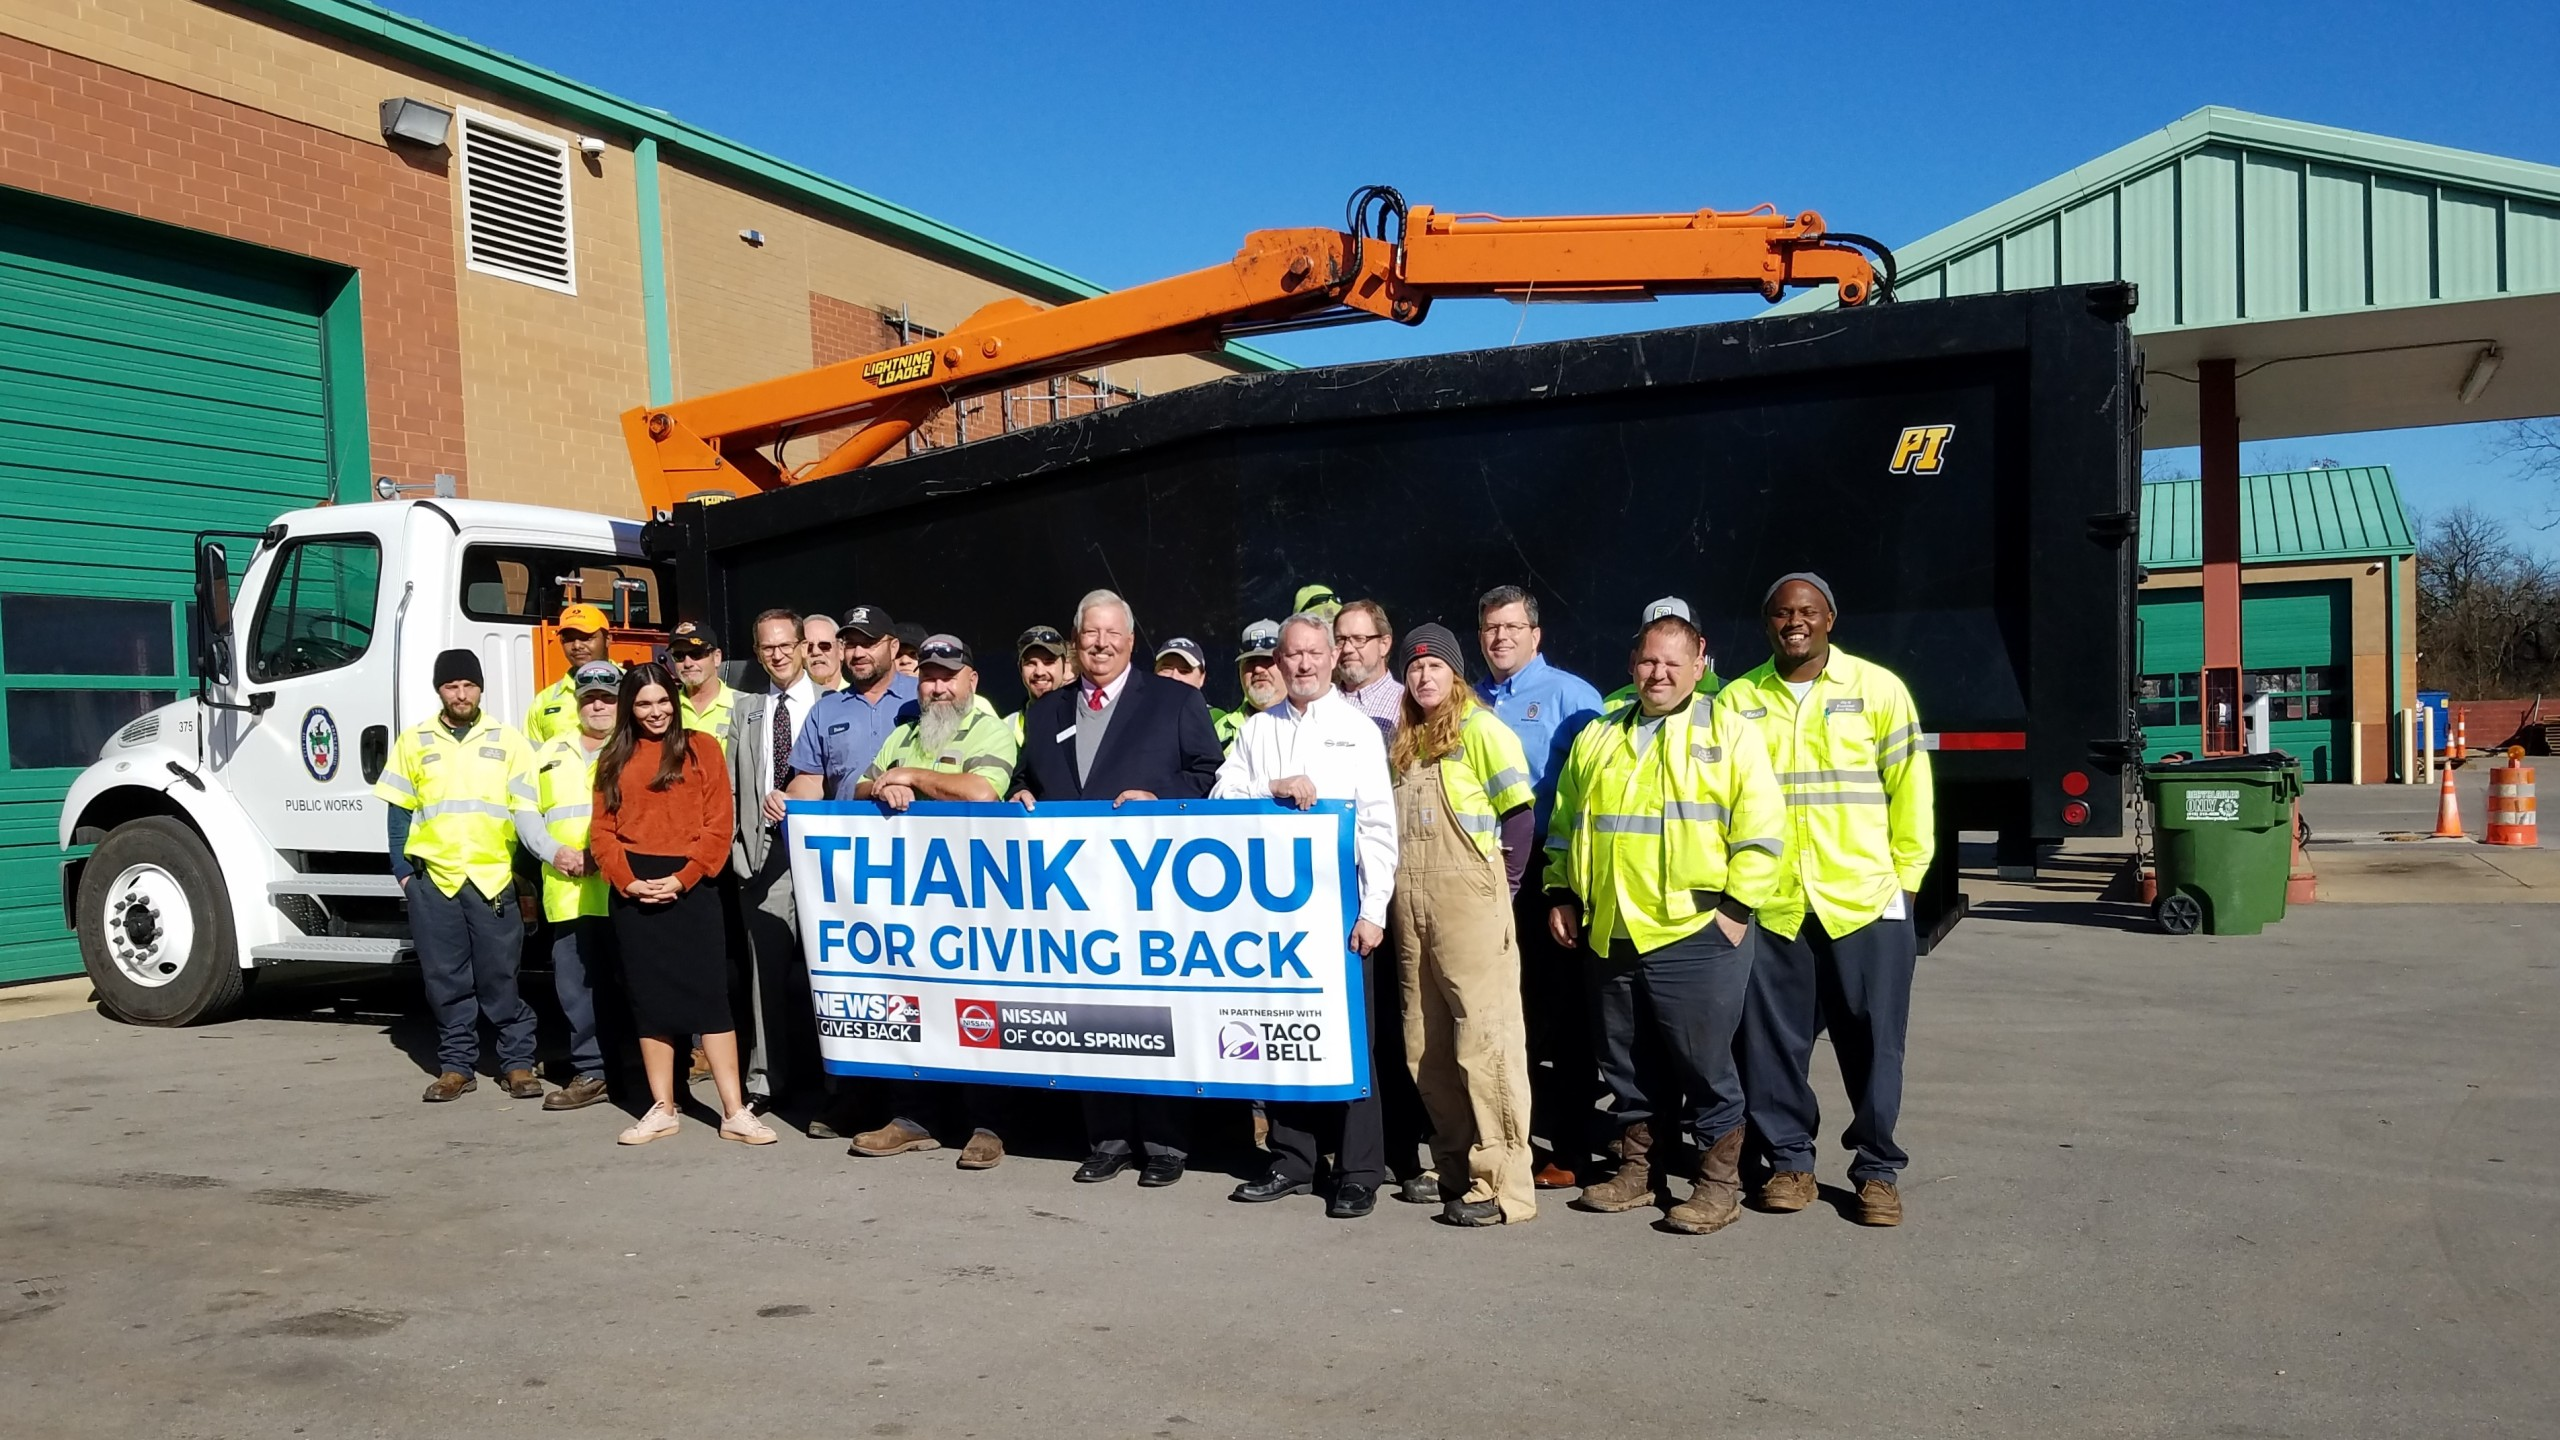 News 2 Gives Back: Brentwood Public Works